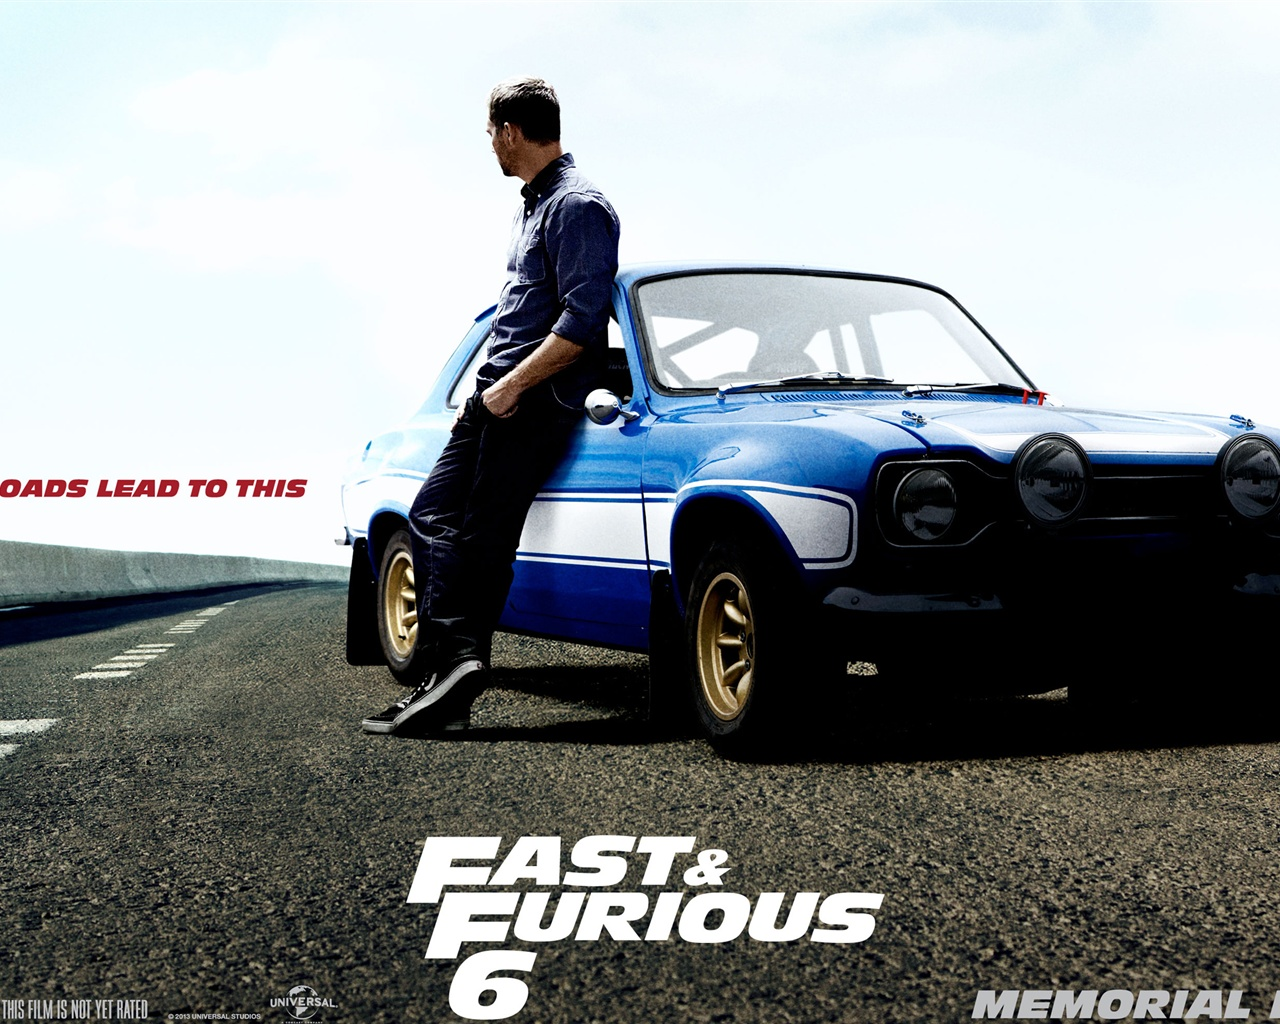 Fast & Furious 6 Wallpaper and Background Image ... |Fast And Furious 6 Paul Walker Wallpaper